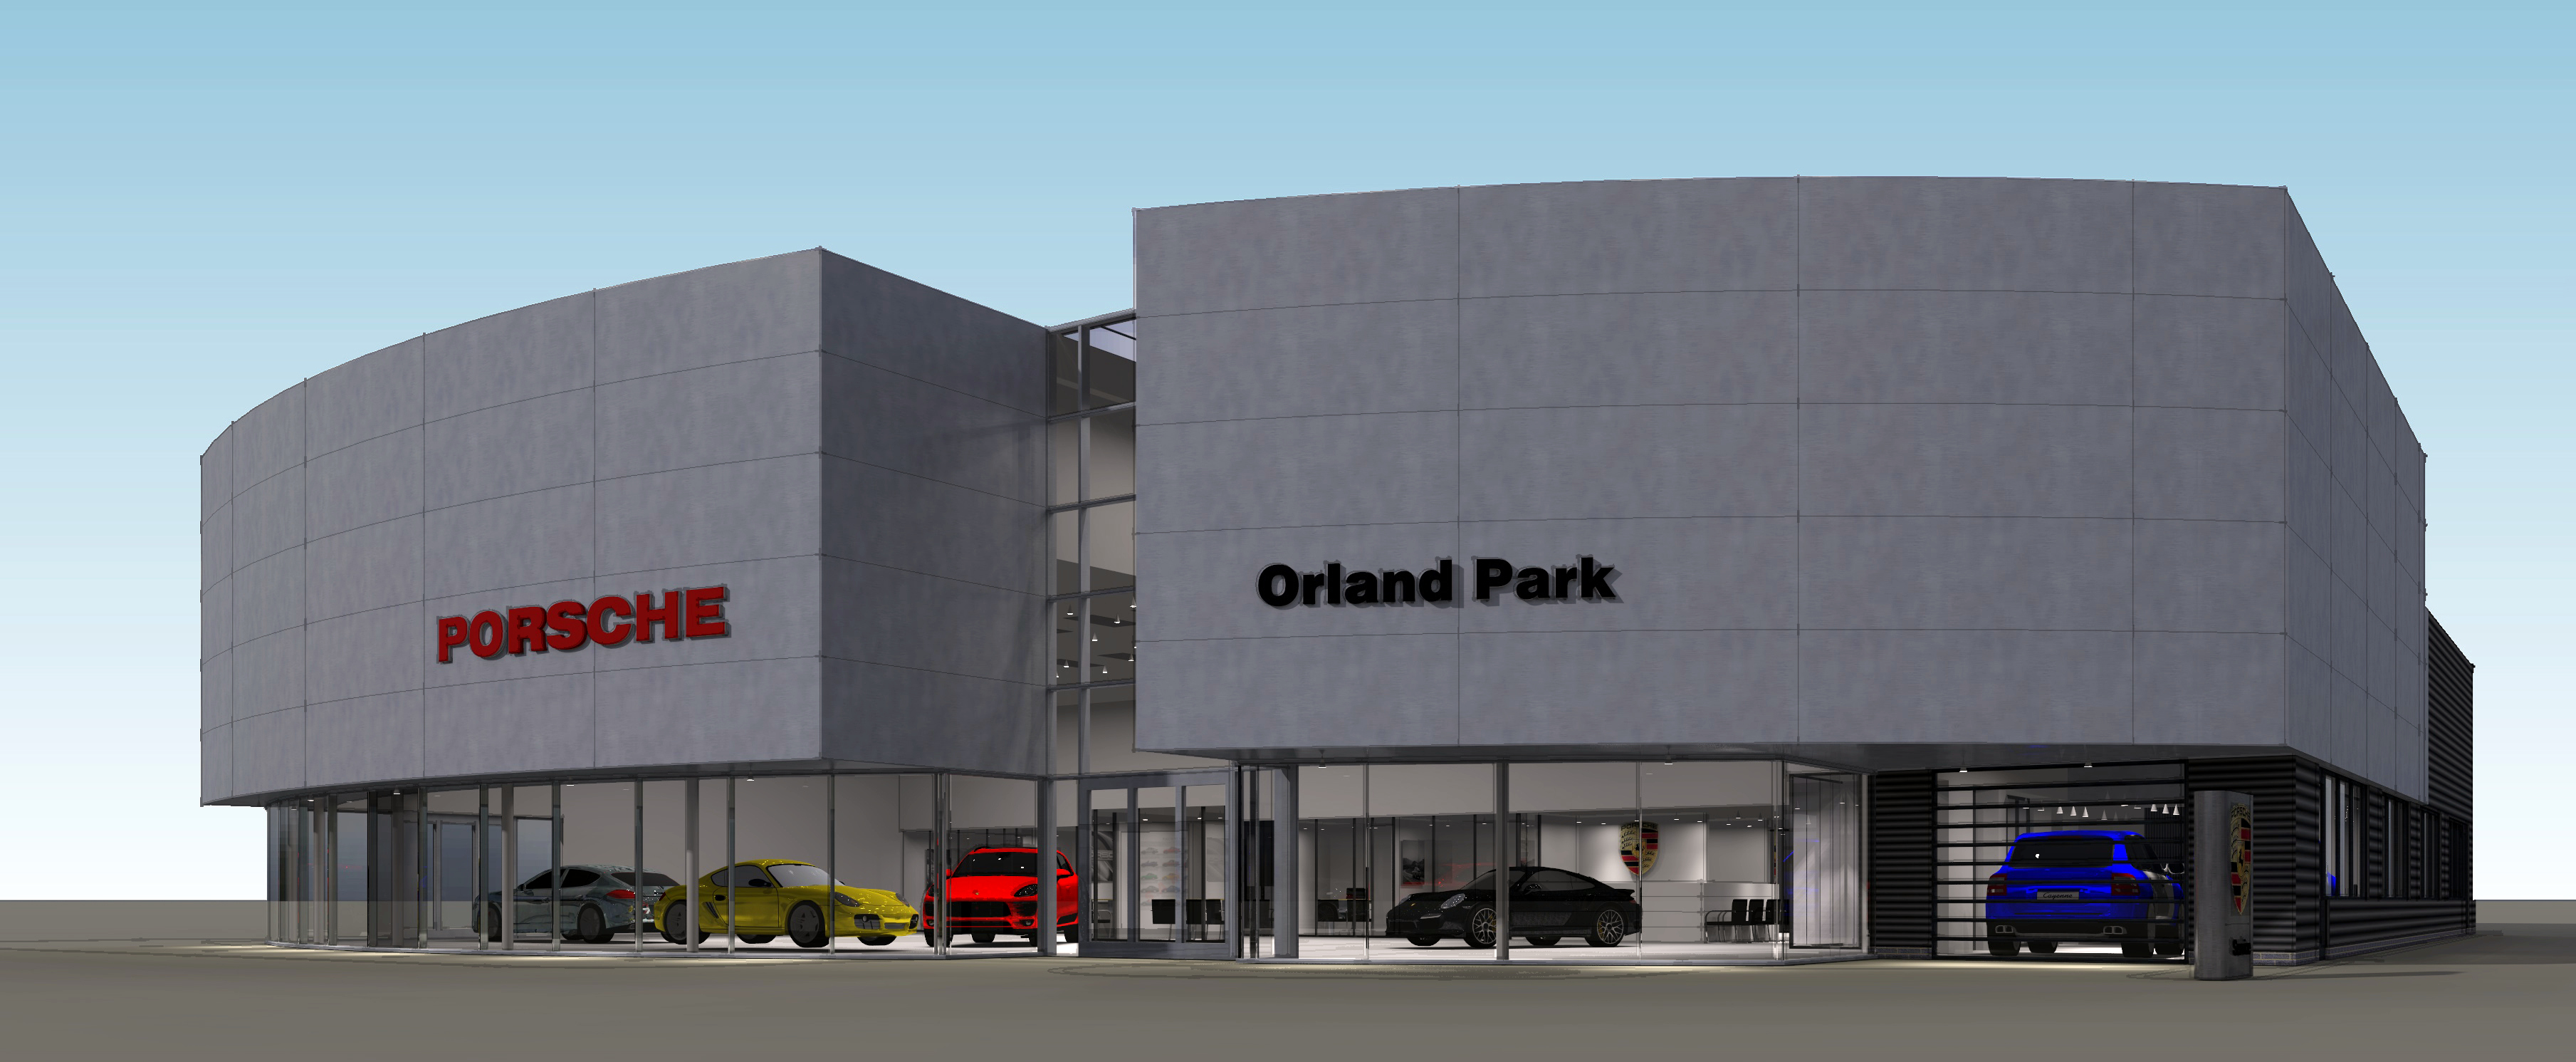 Brand New Building ing Soon for Porsche Orland Park